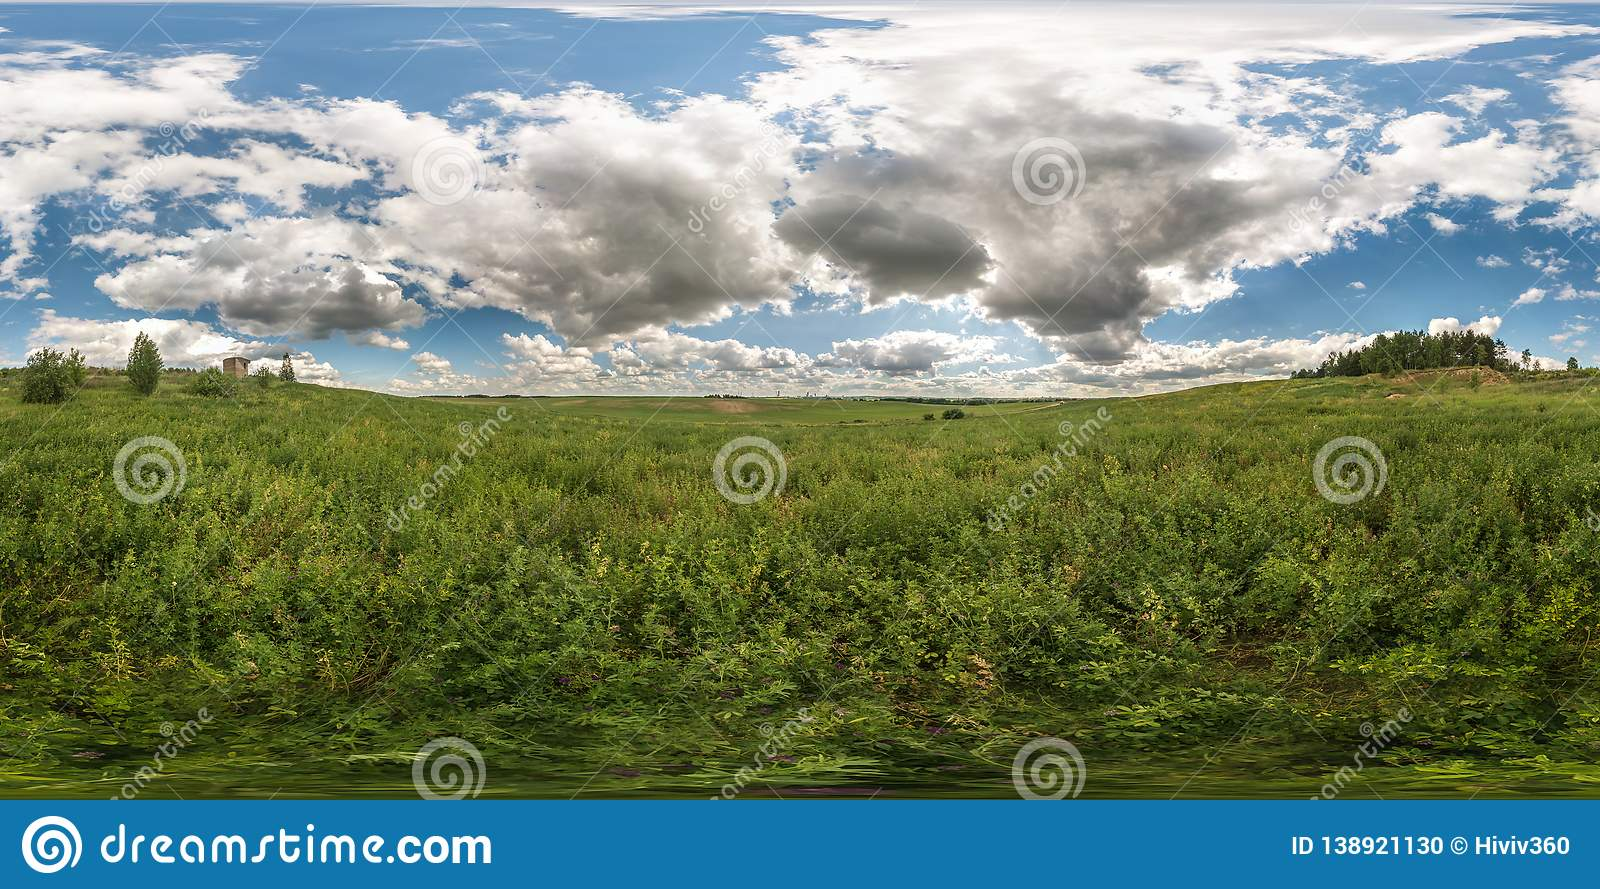 Full 360 degree seamless panorama in equirectangular spherical equidistant projection. Panorama view in a meadow in beautiful day